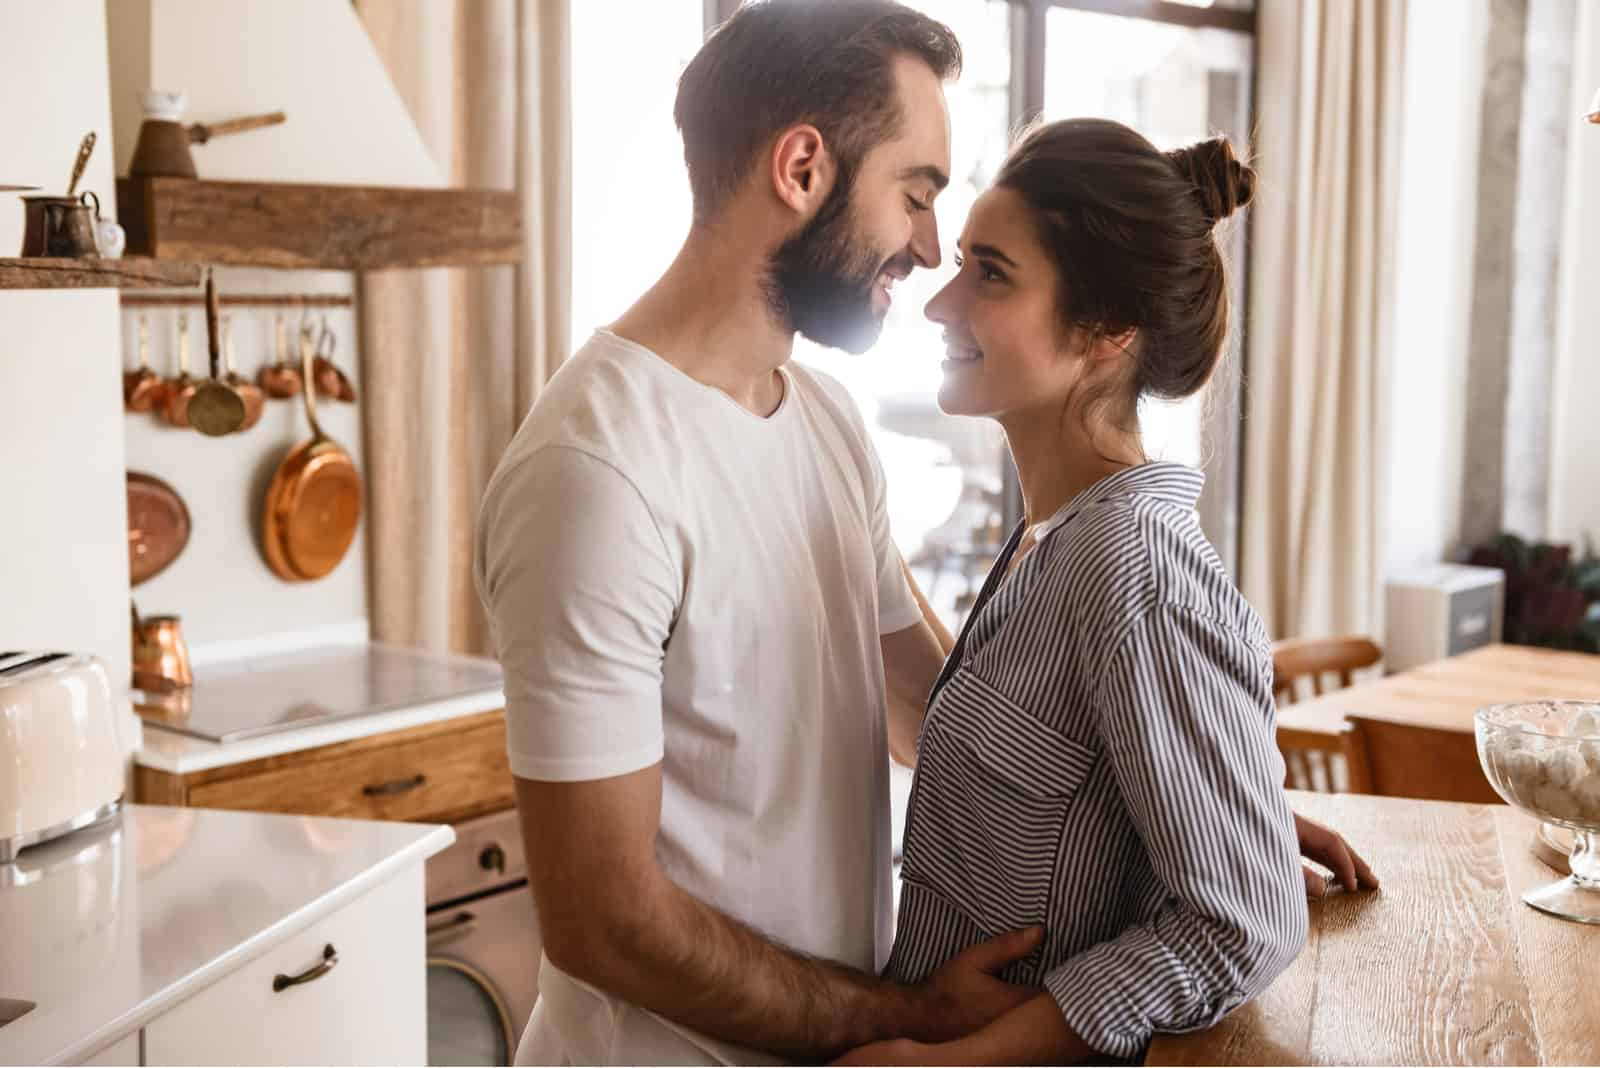 a man hugged a woman in the kitchen